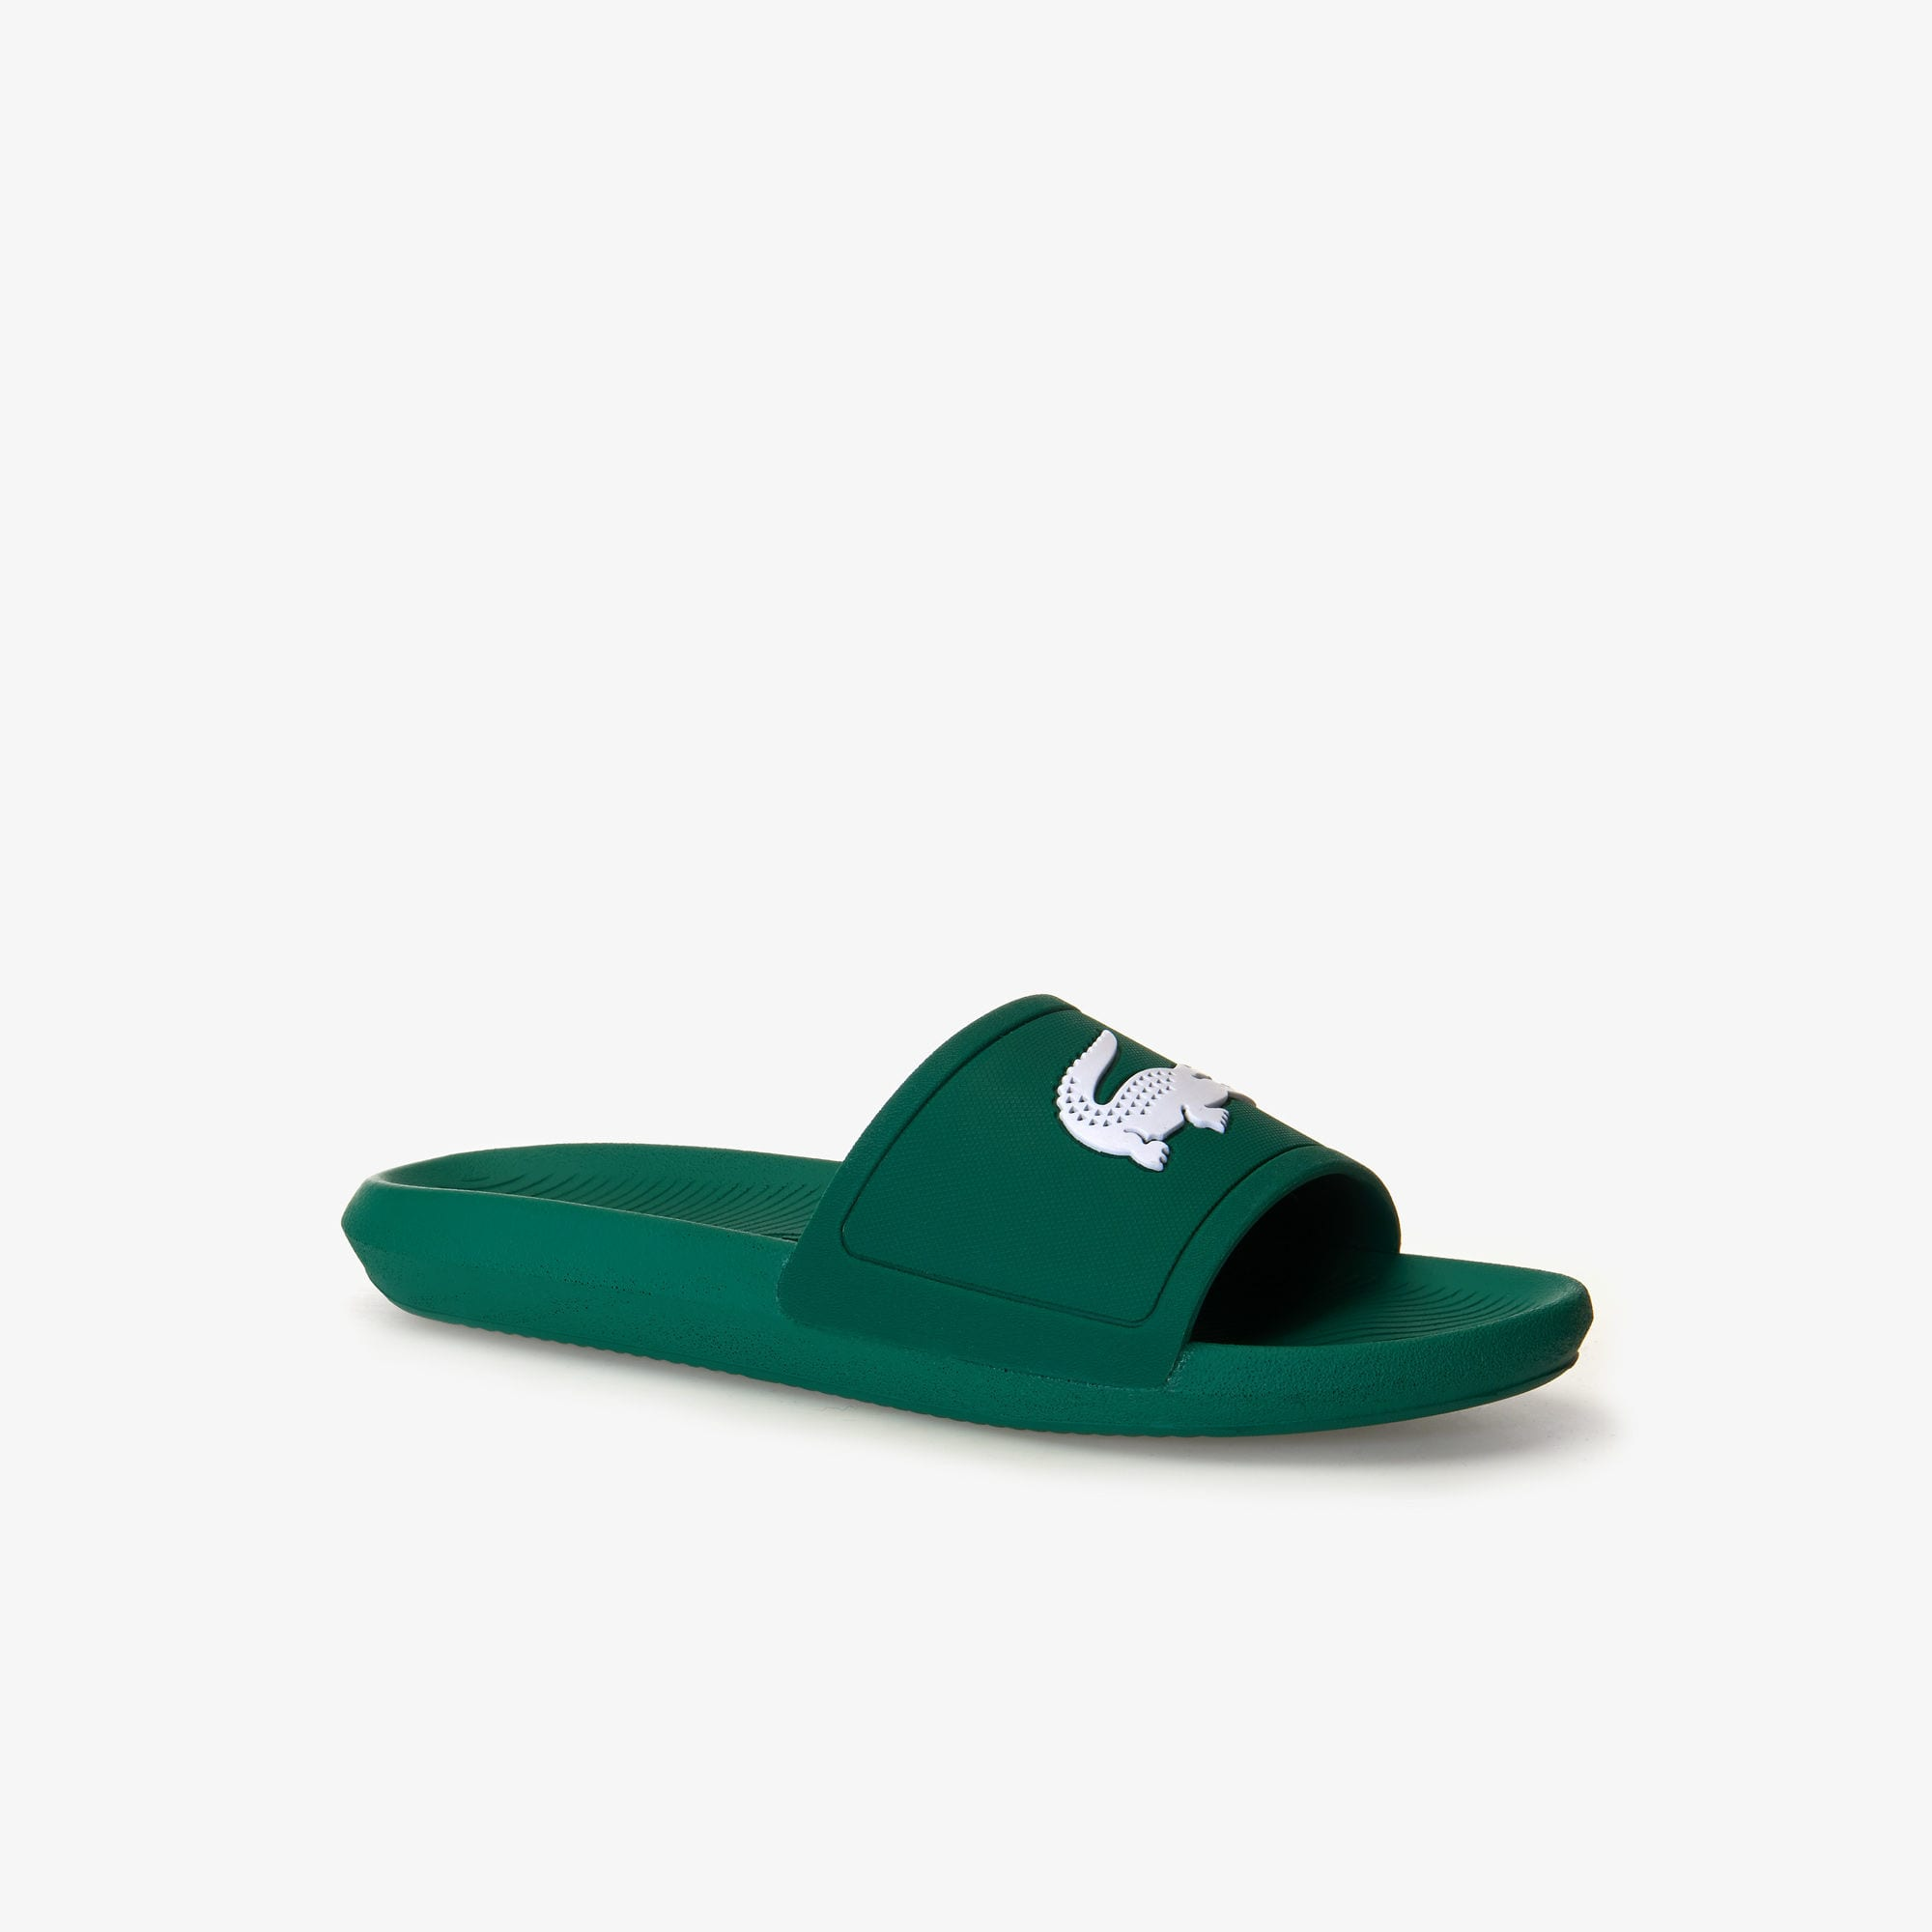 Men's Croco Slide 119 Rubber Slides (Green/White)